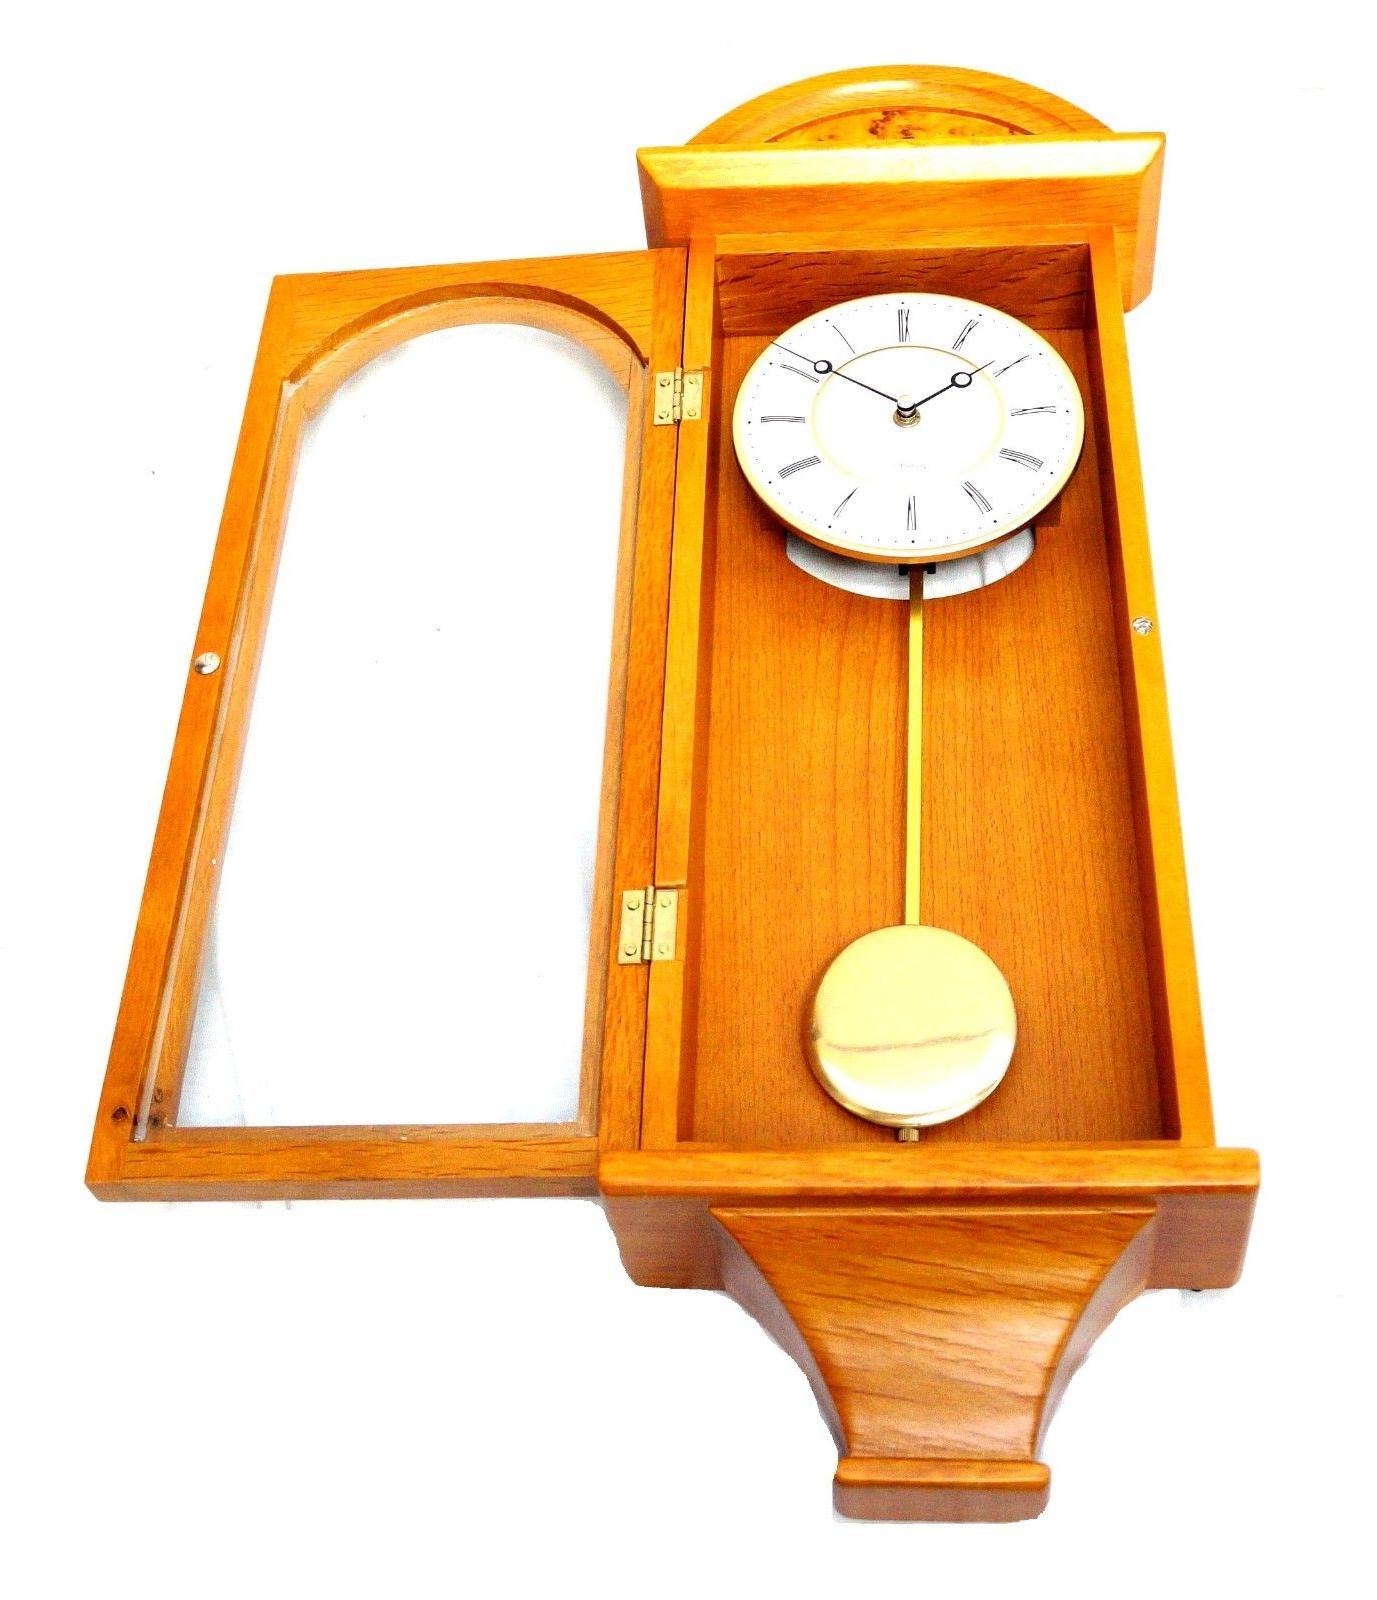 J&D Best Pendulum Clock Silent retro classic Wood